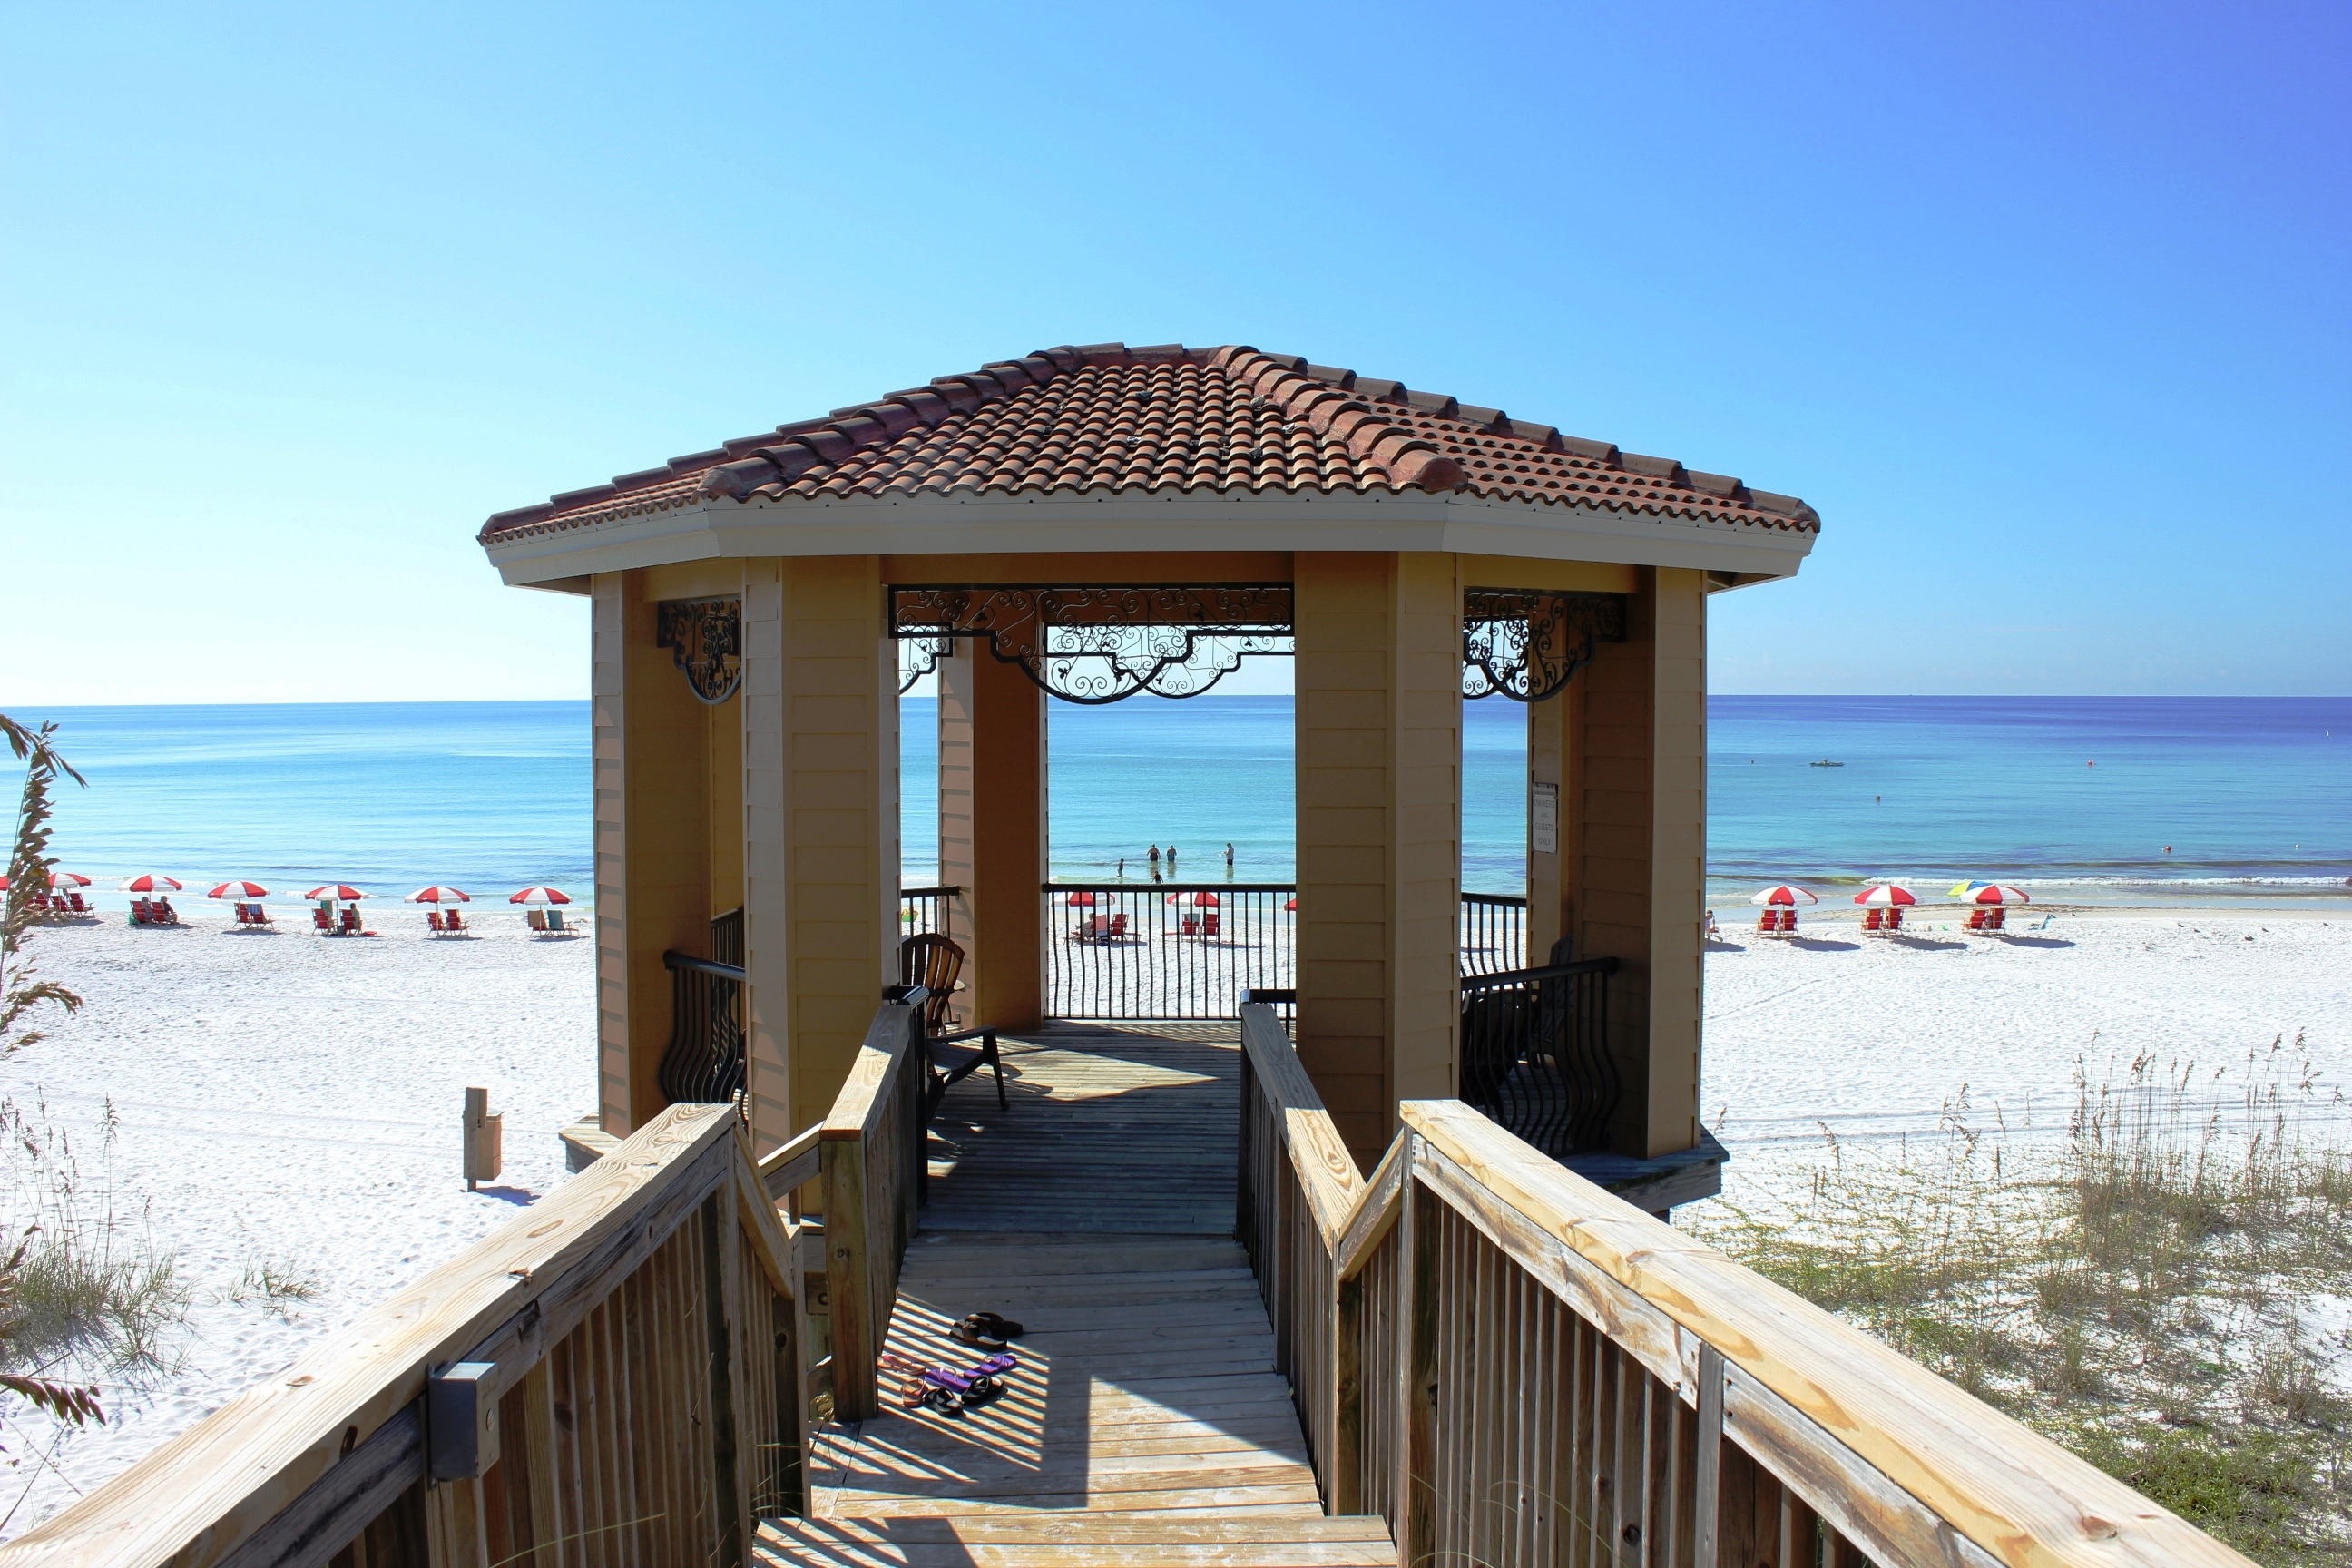 Mediterranea destin condo rentals for 9 bedroom rental destin florida